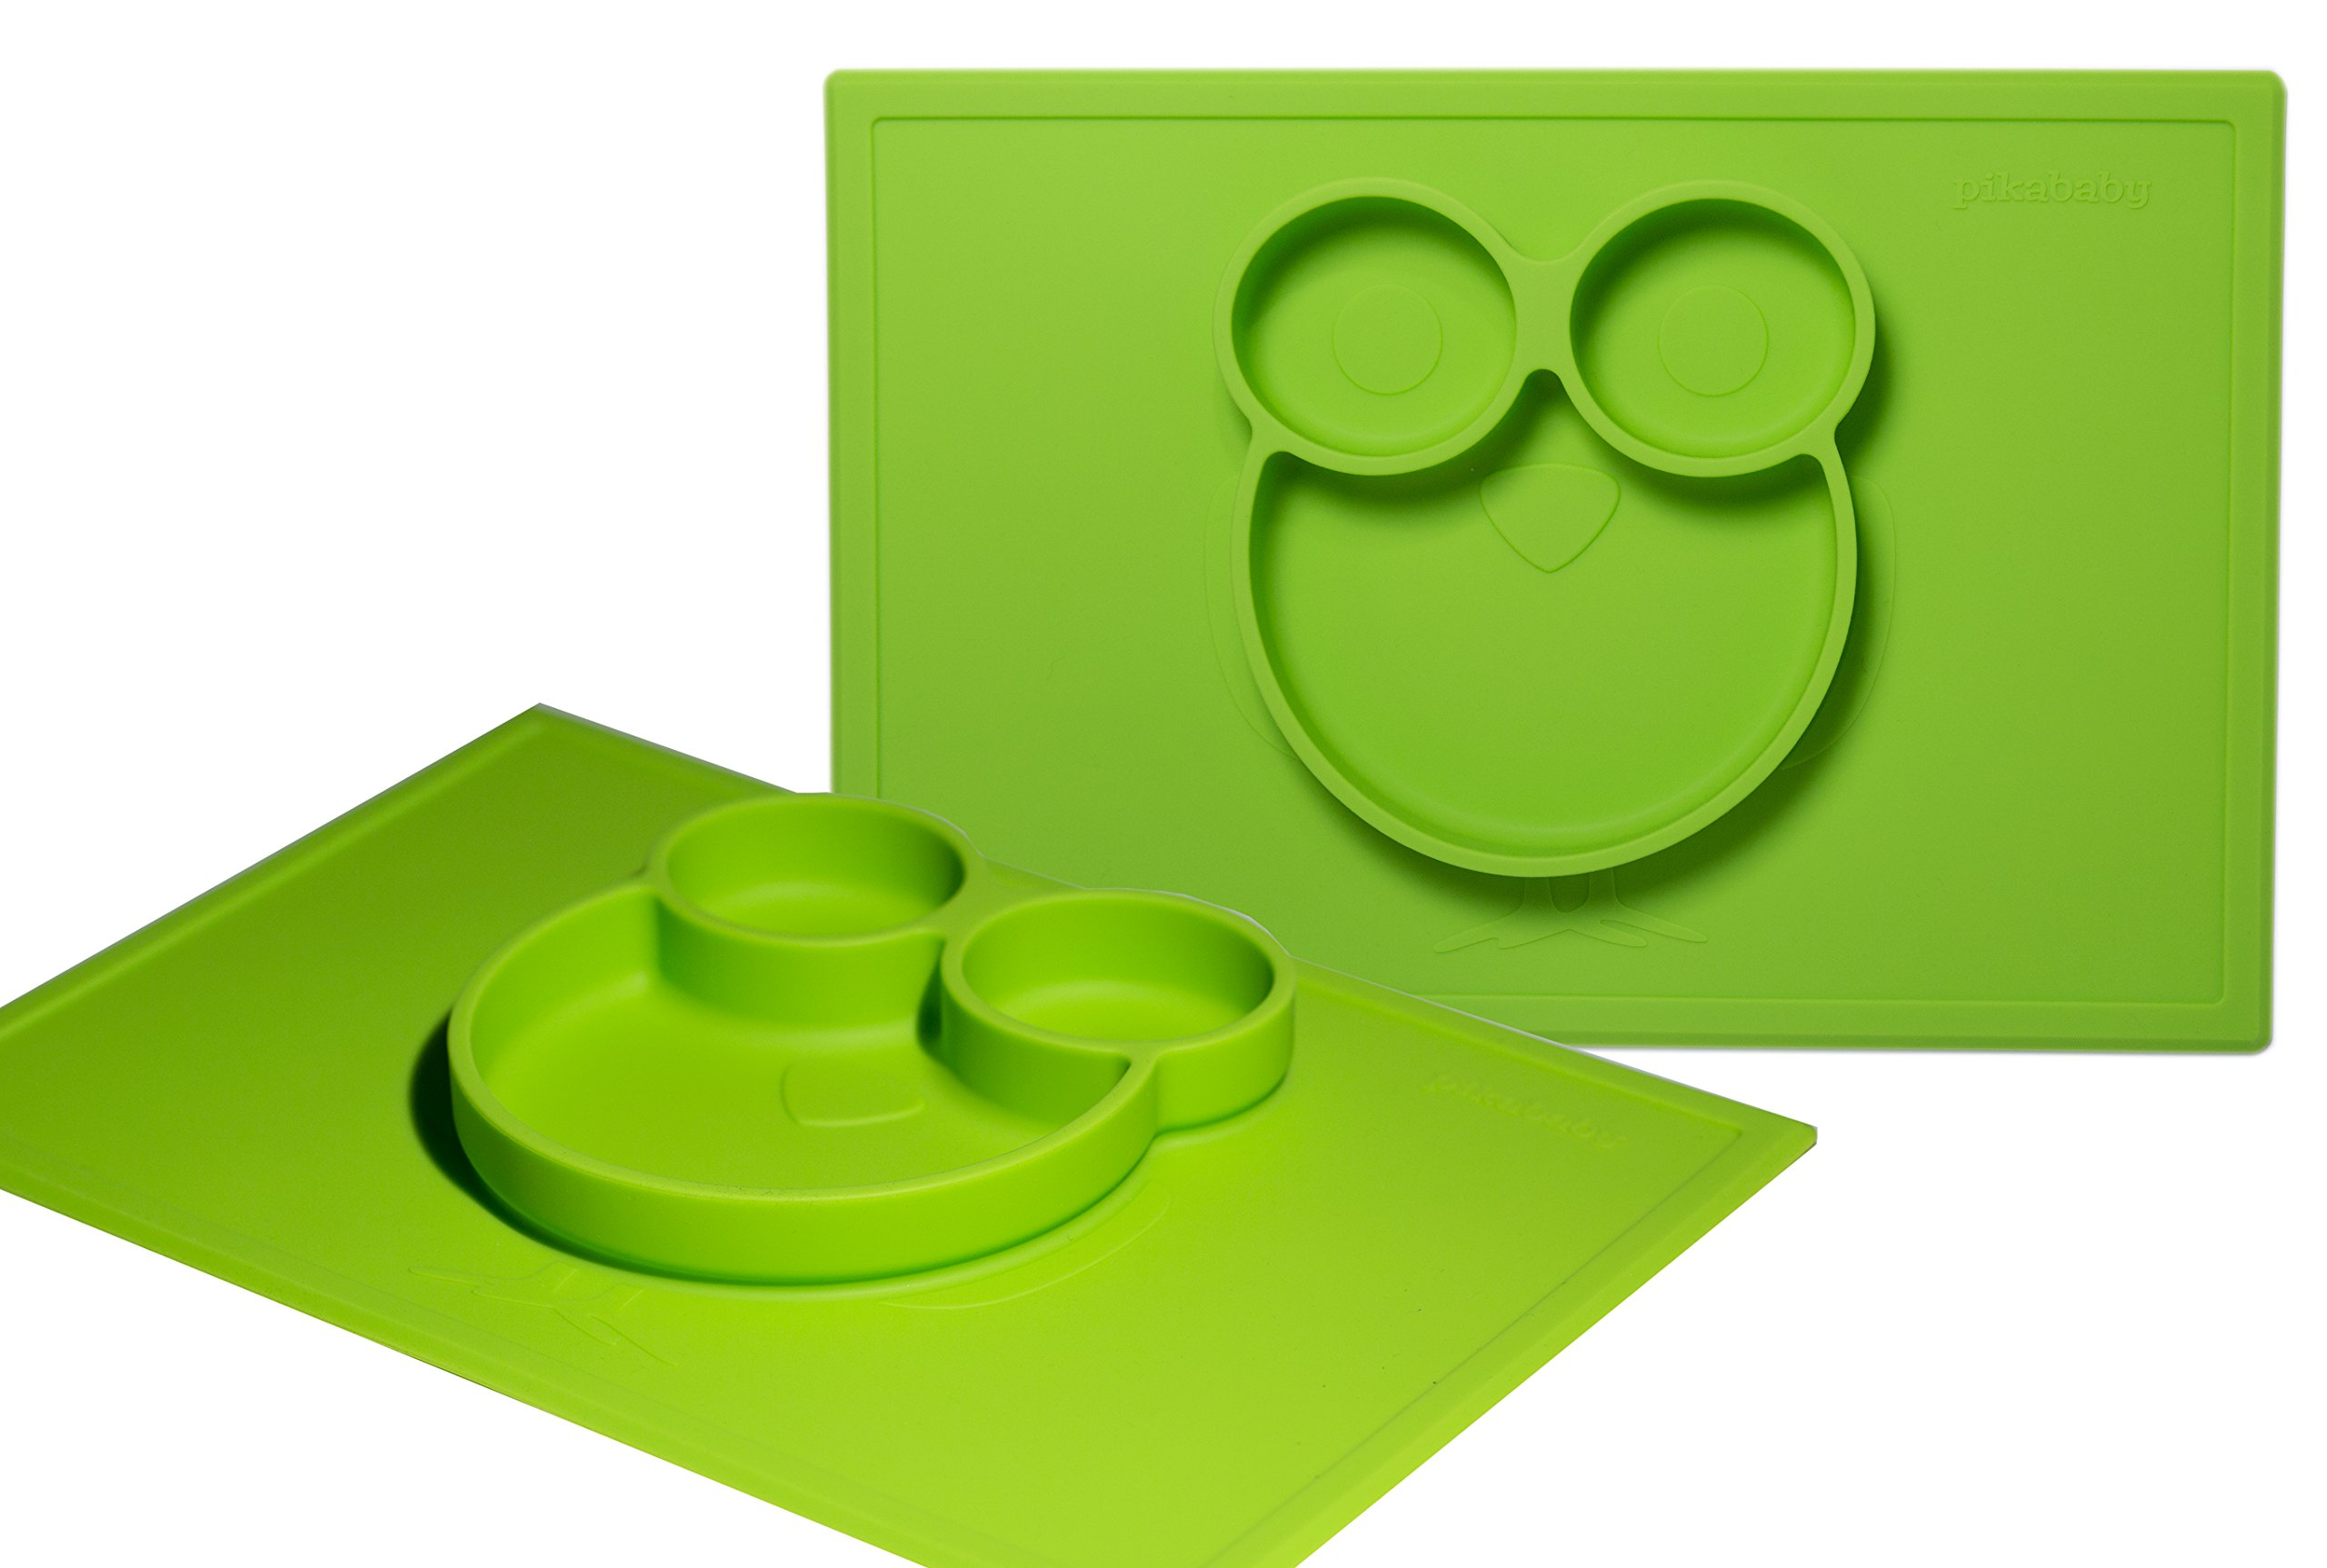 Silicone Placemats for Babies, Toddlers and Kids | Non Slip Silicone Feeding Food Tray/Placemat and Plate | Waterproof | BPA Free | Fits with common Tables & Highchair | Best Baby Shower Gift Green